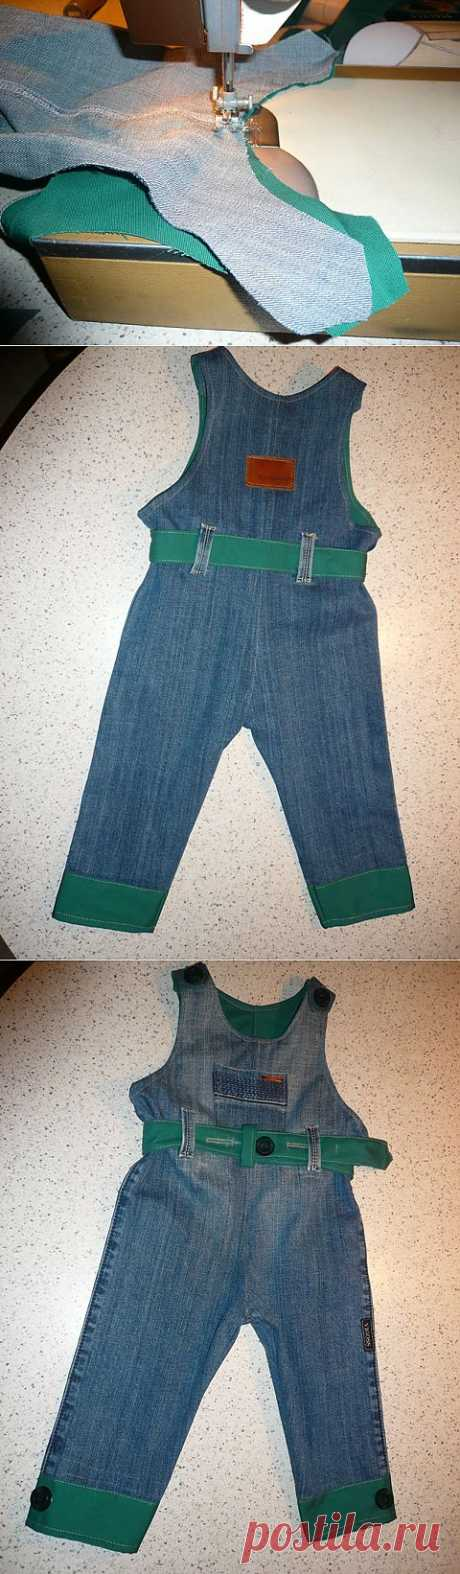 the second life of jeans trousers | MAKE!